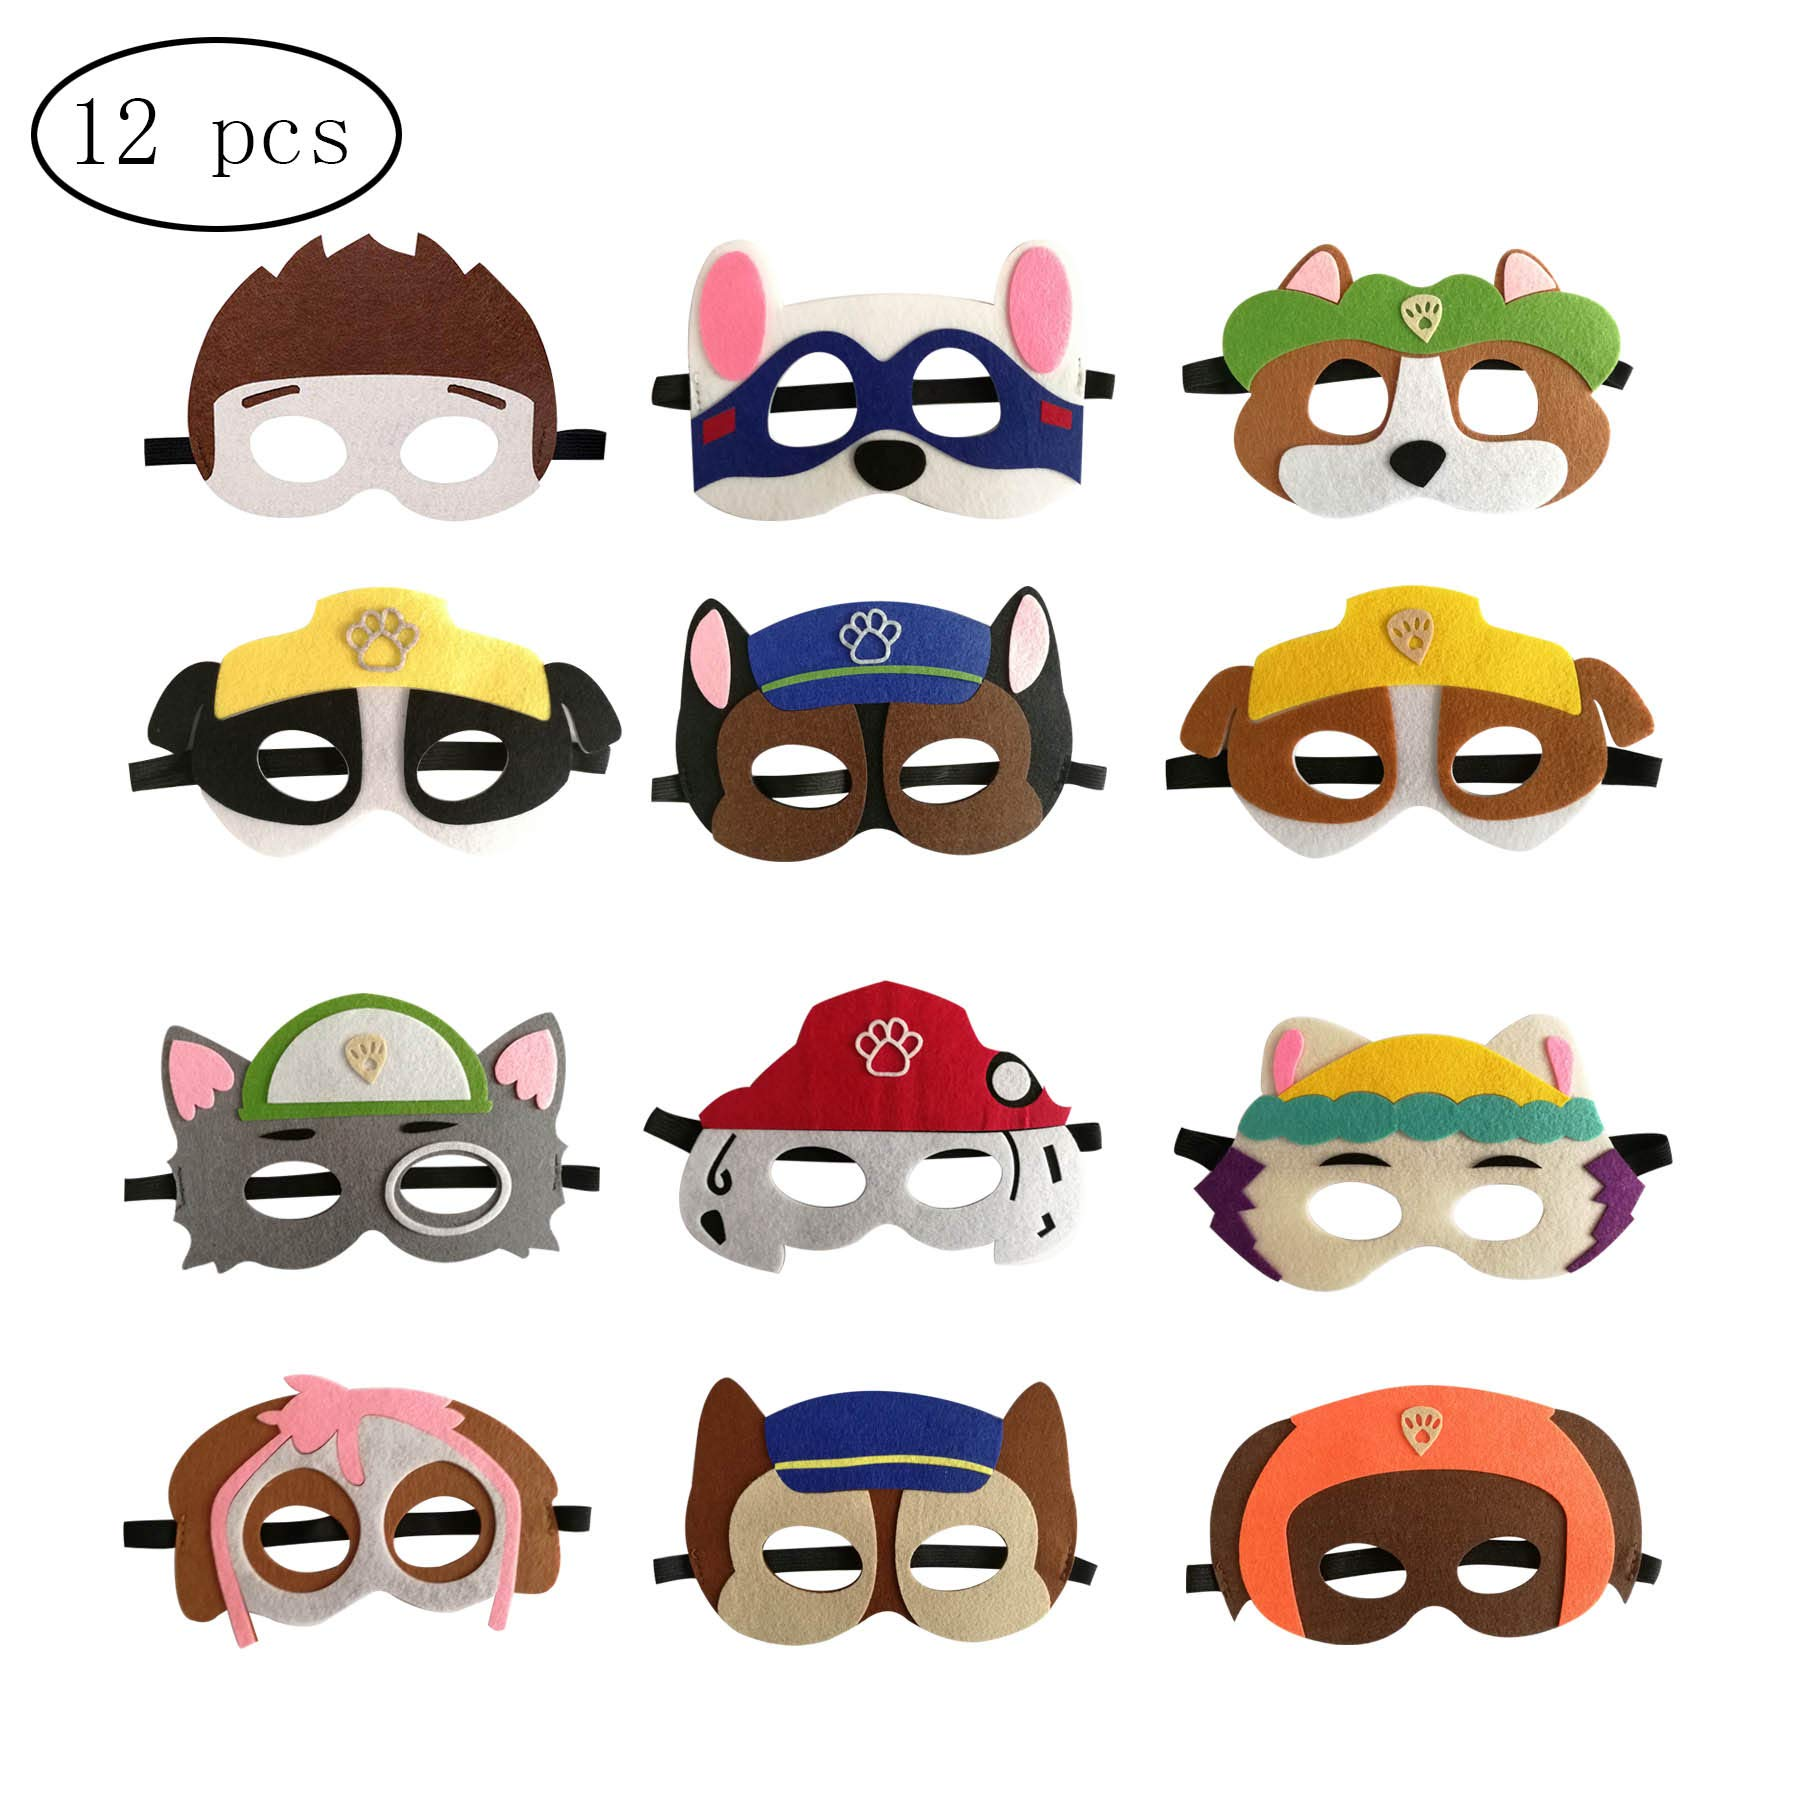 12pcs Dog Patrol Birthday Party Masks for Kids Party Favors Party Supplies